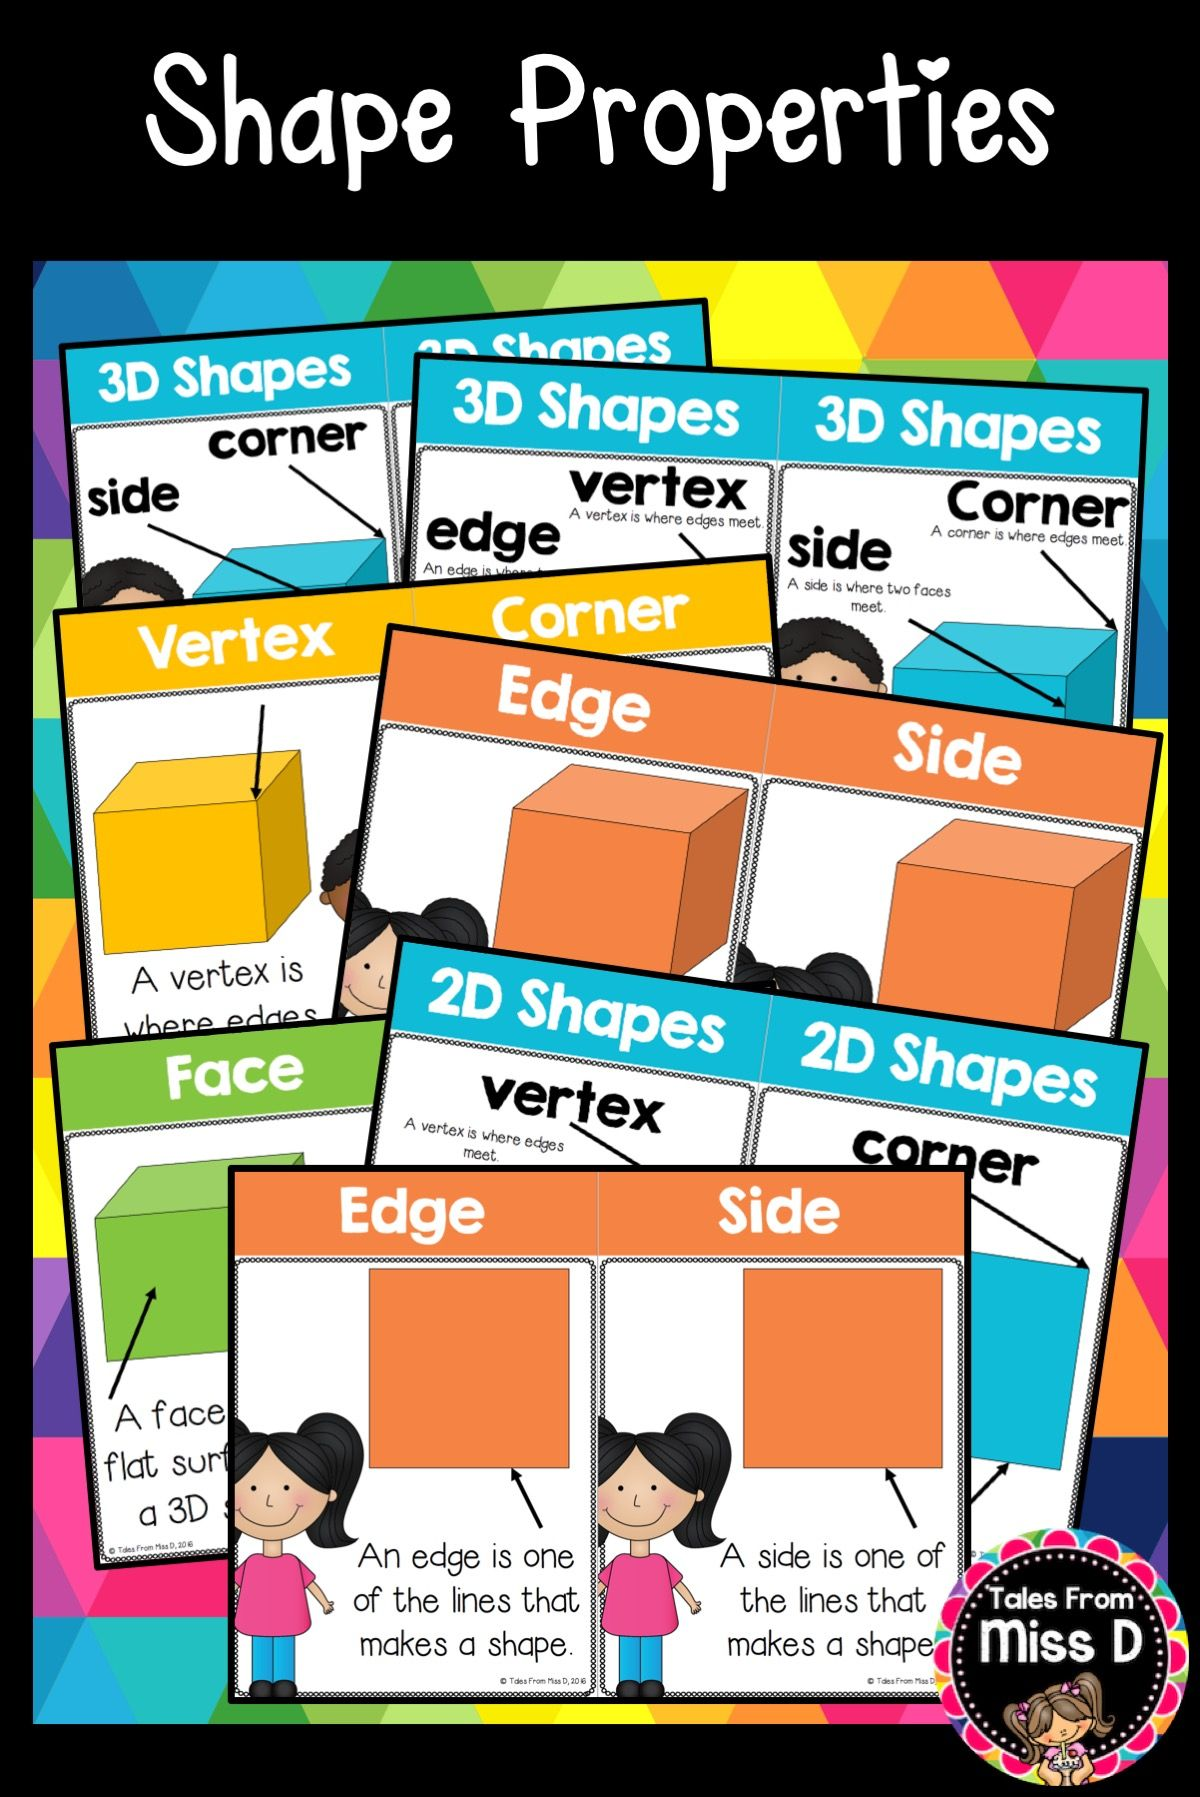 Properties Of Shapes Posters